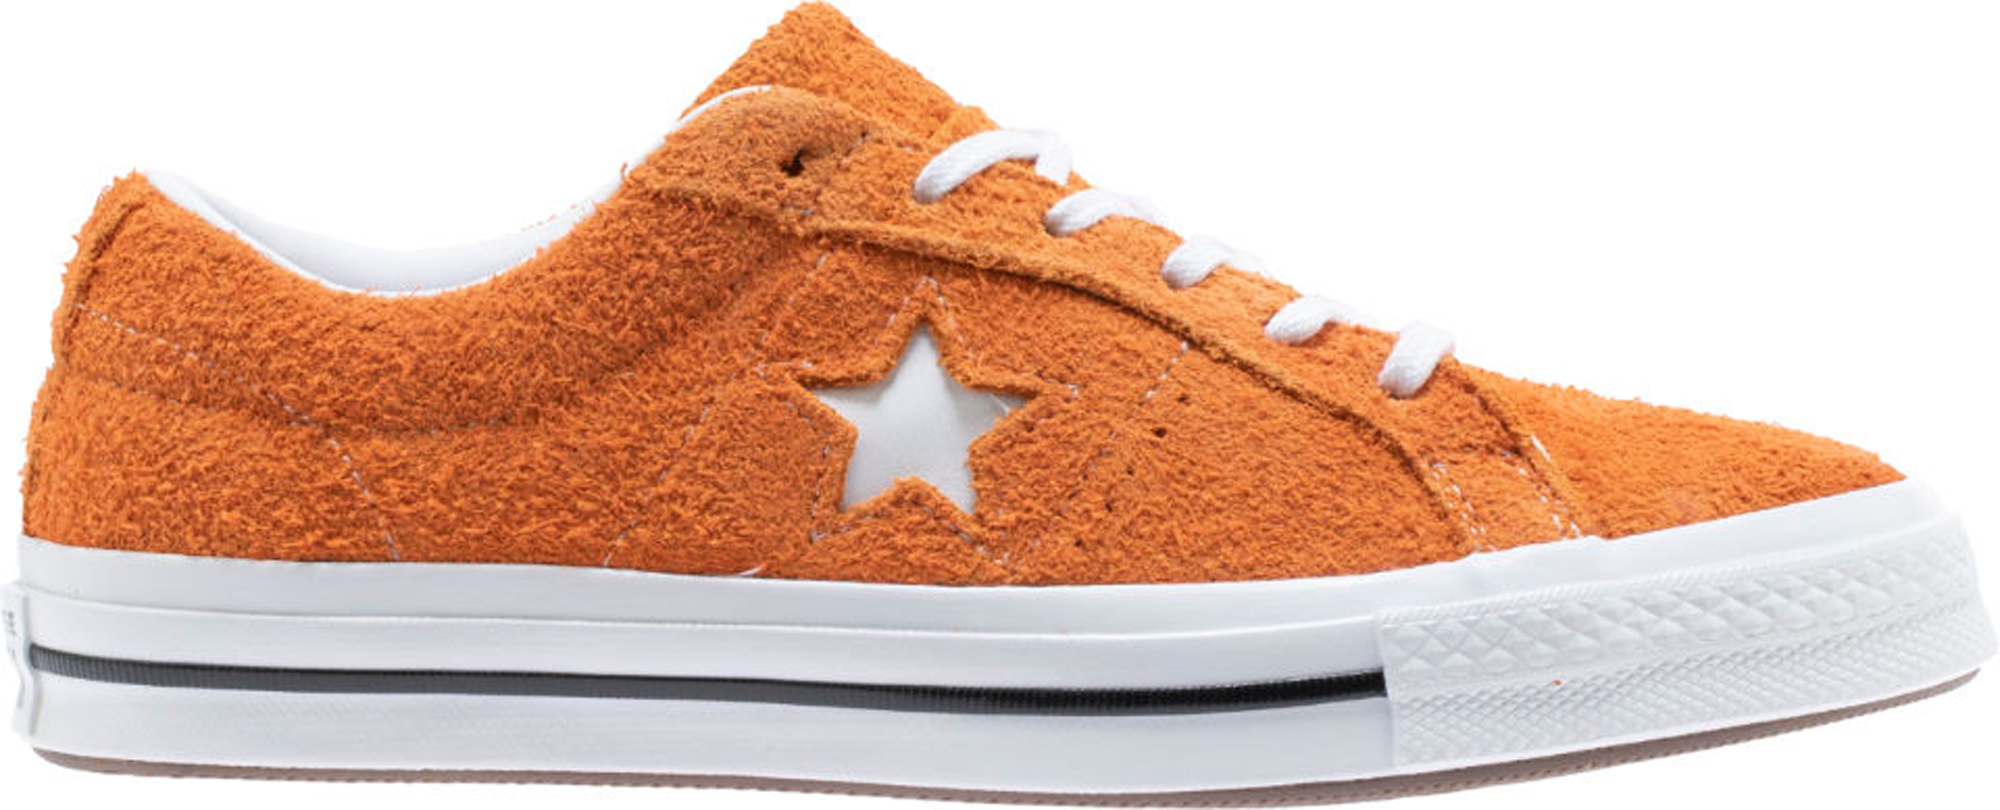 Converse One Star Ox Vintage Suede Bold